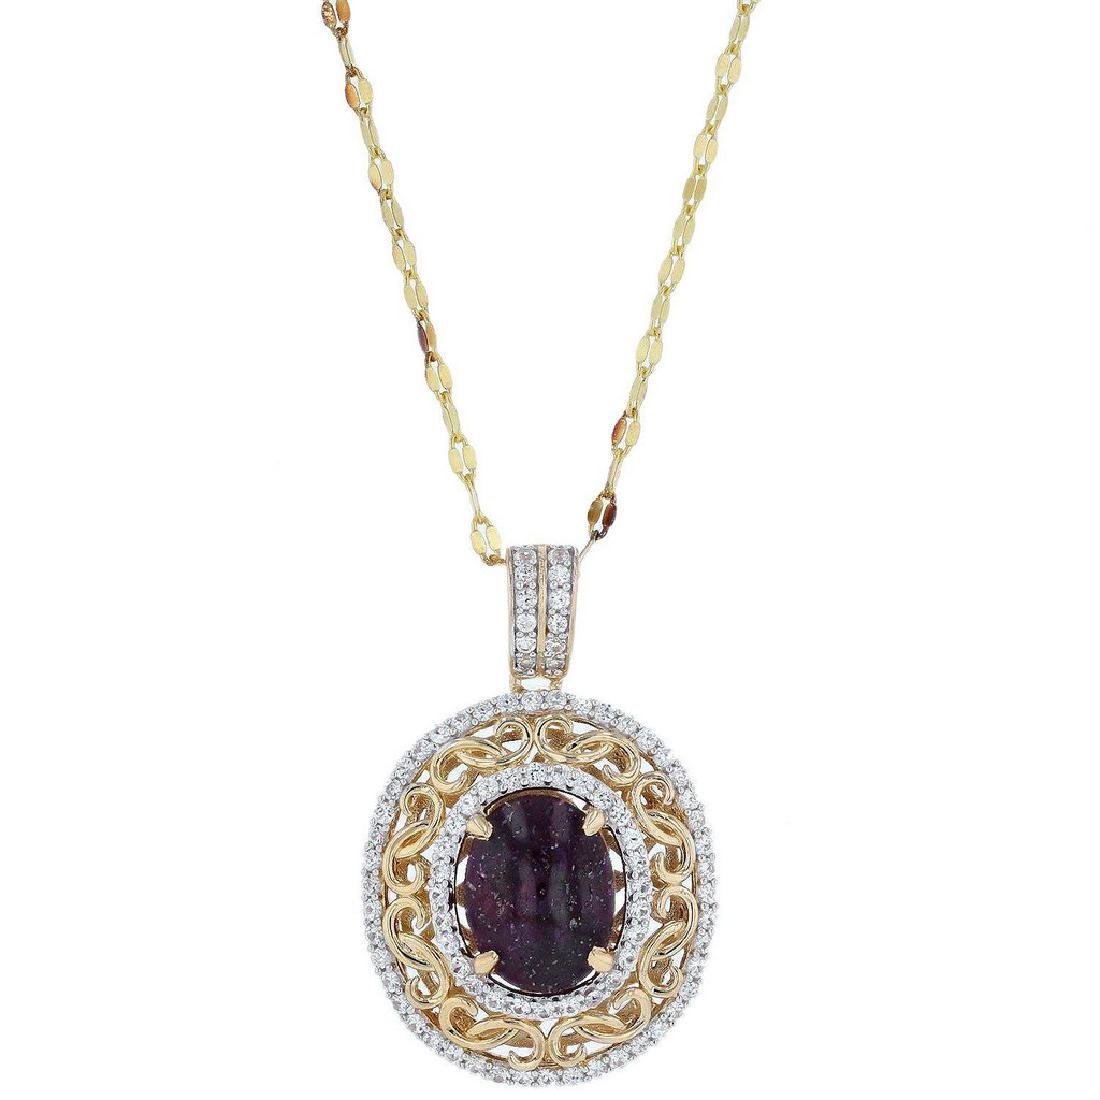 11.29ct Ruby and 1.55ctw White Sapphire Pendant